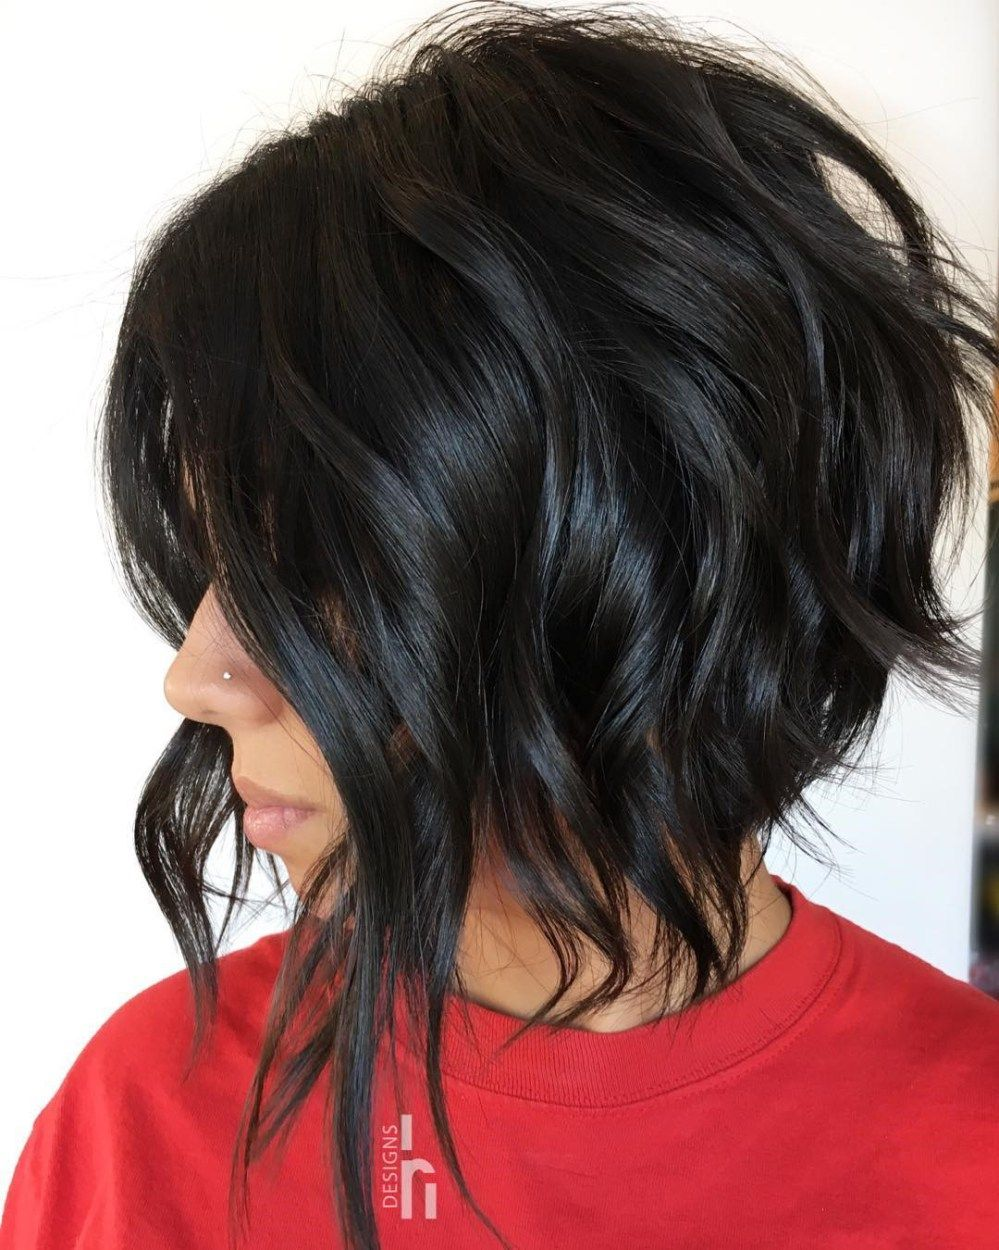 Edgy Brunette Bob with Glossy Waves | Short wavy hair, Thick hair styles, Hair styles